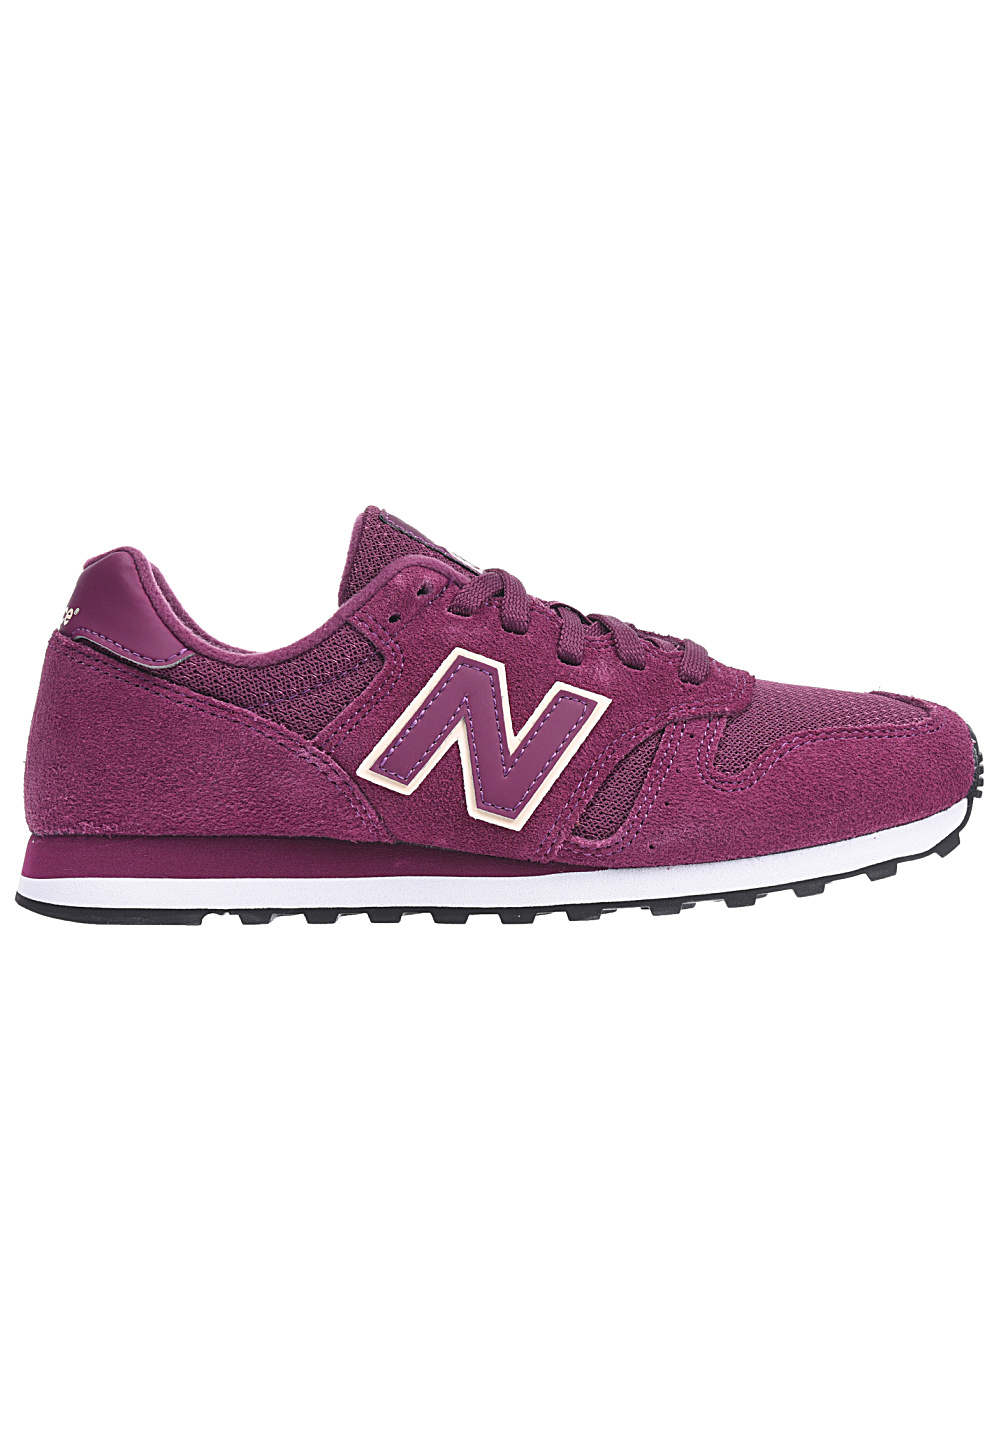 New Balance Wl373 zapatillas